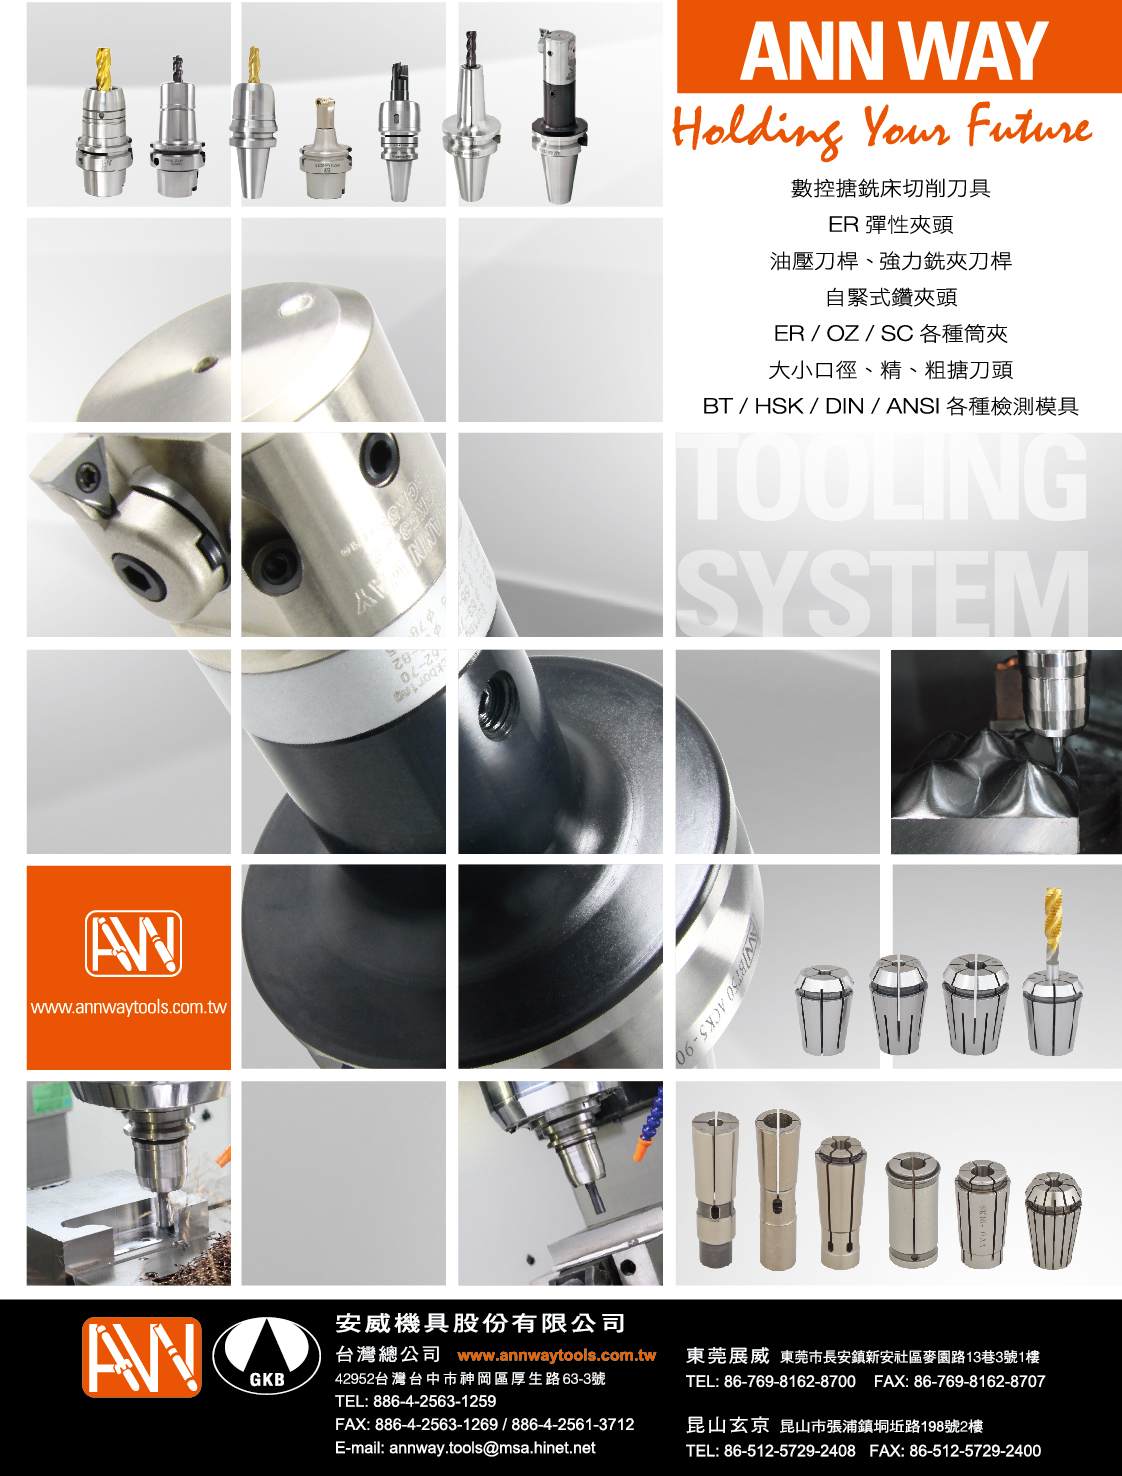 ANN WAY MACHINE TOOLS CO., LTD.